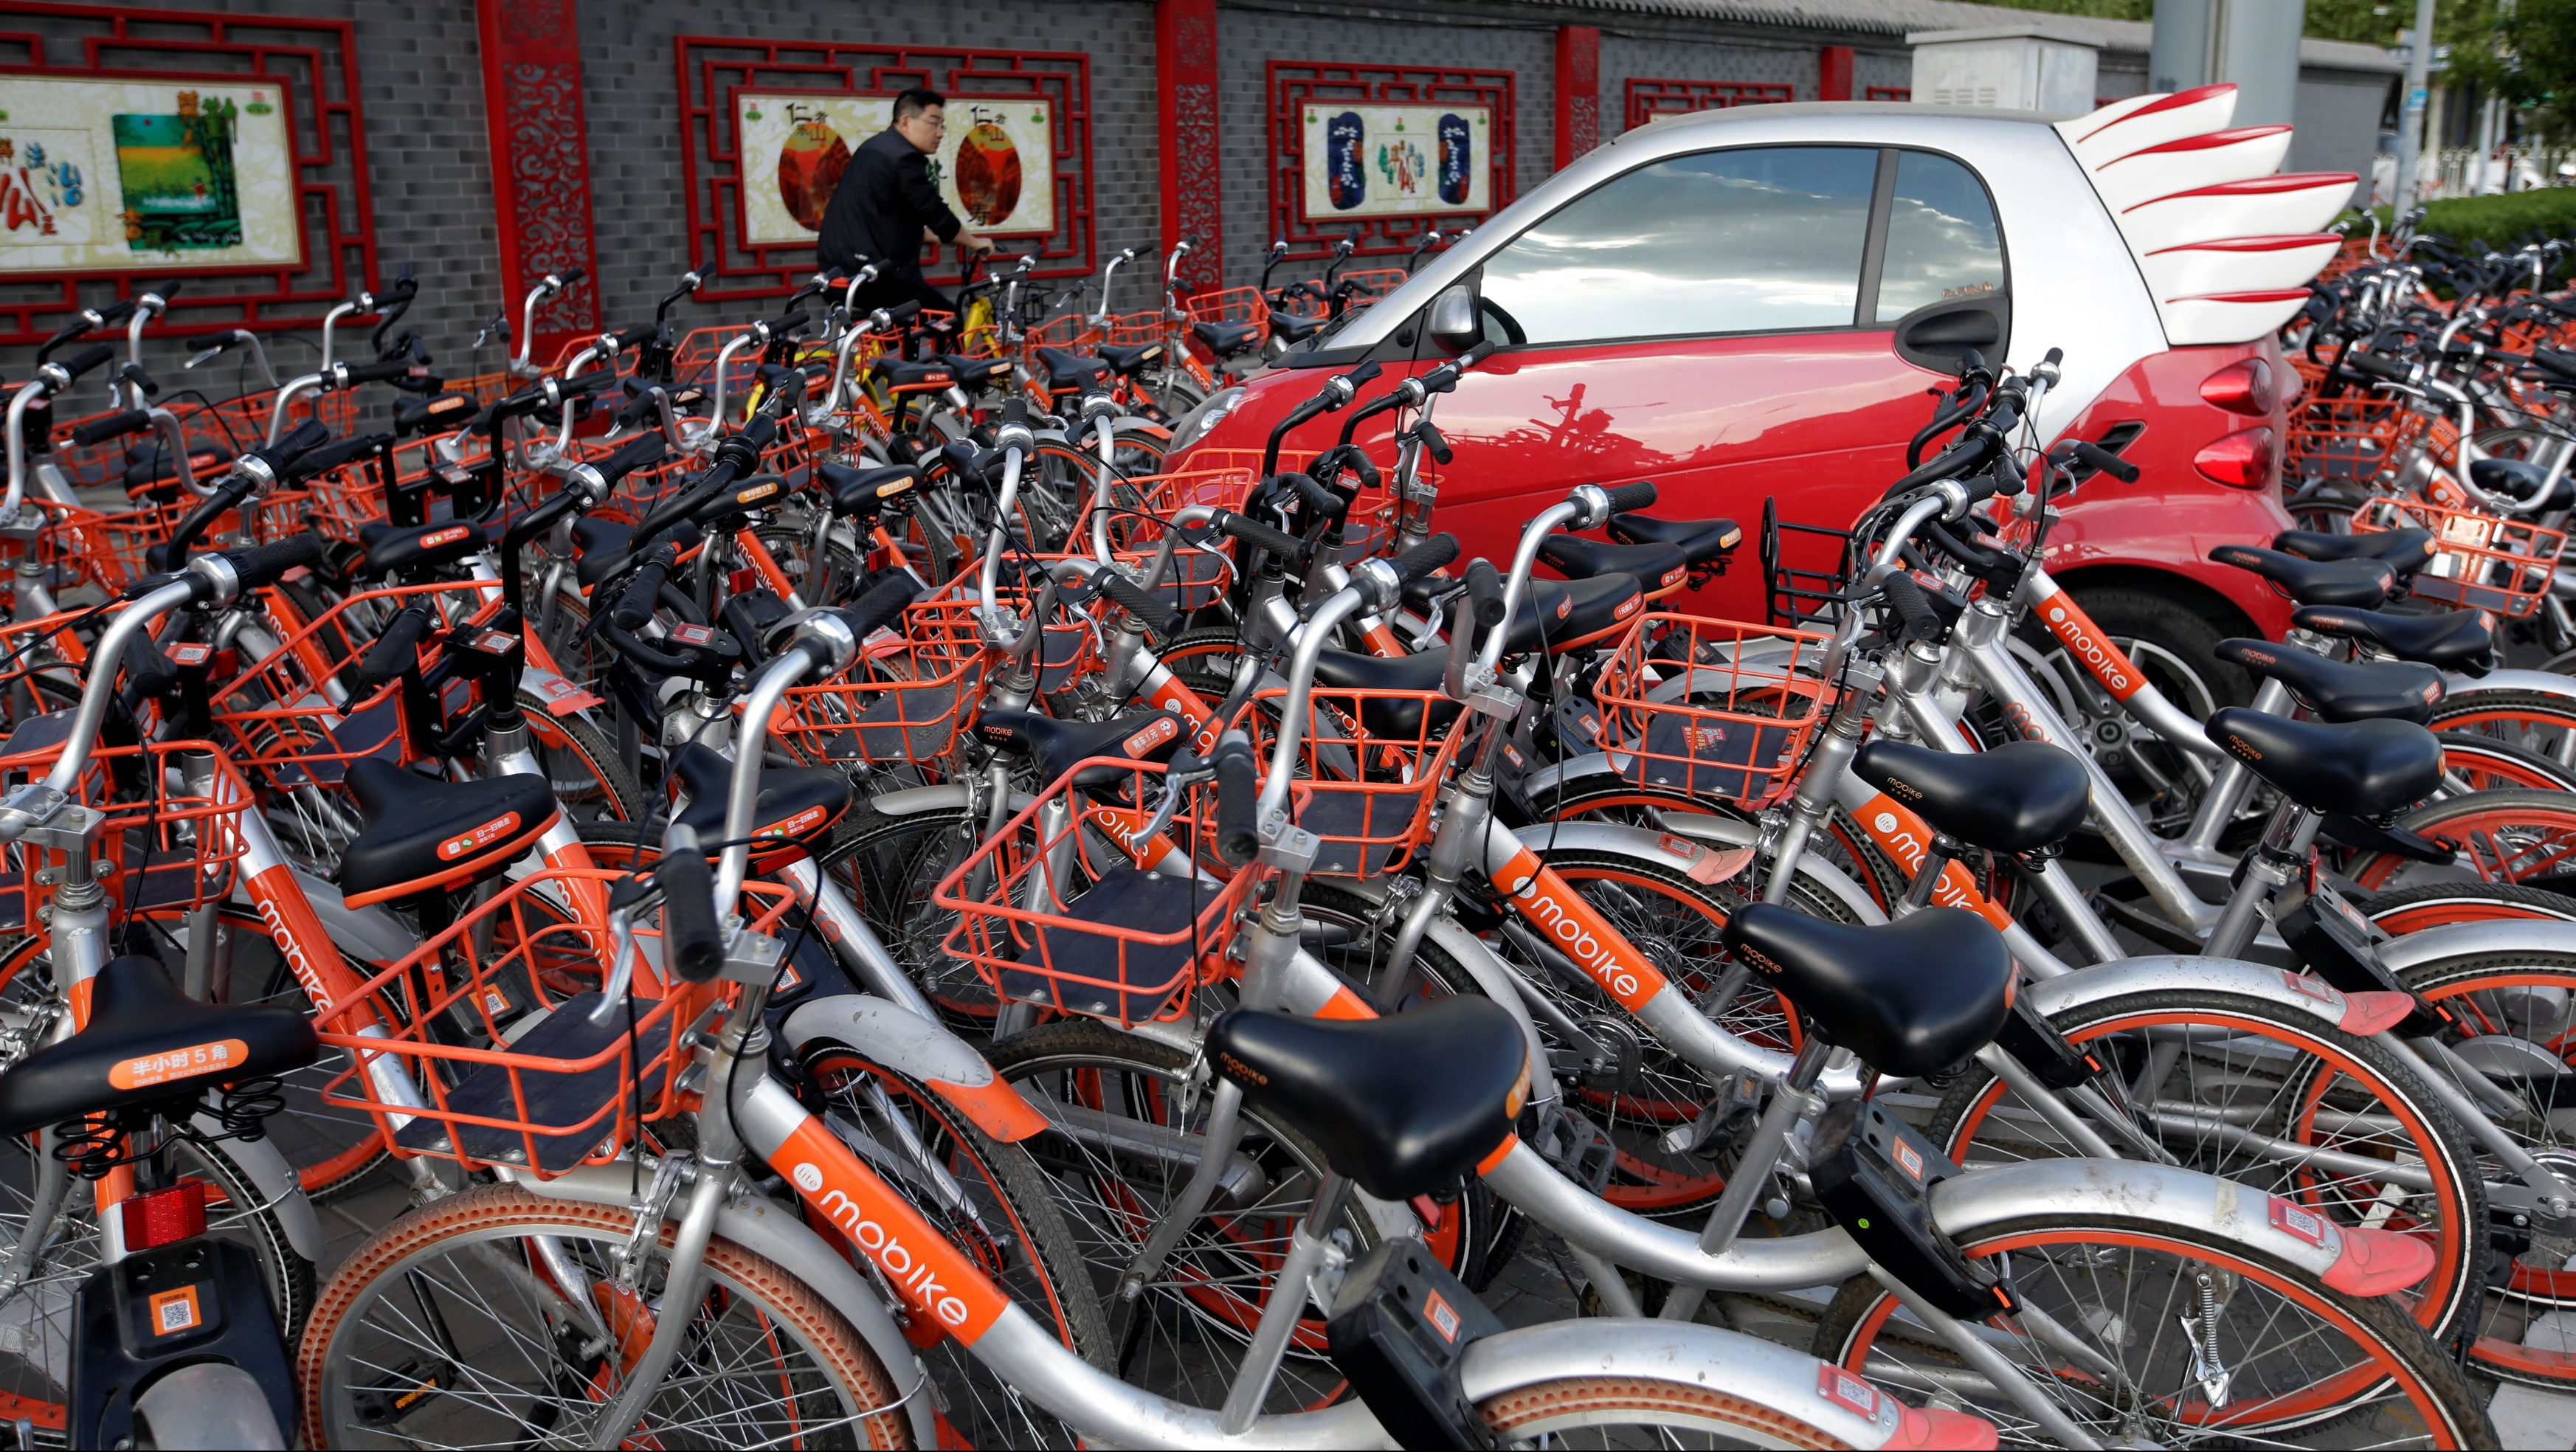 Mobike's shared bikes are parked around a car in Beijing, China April 21, 2017.